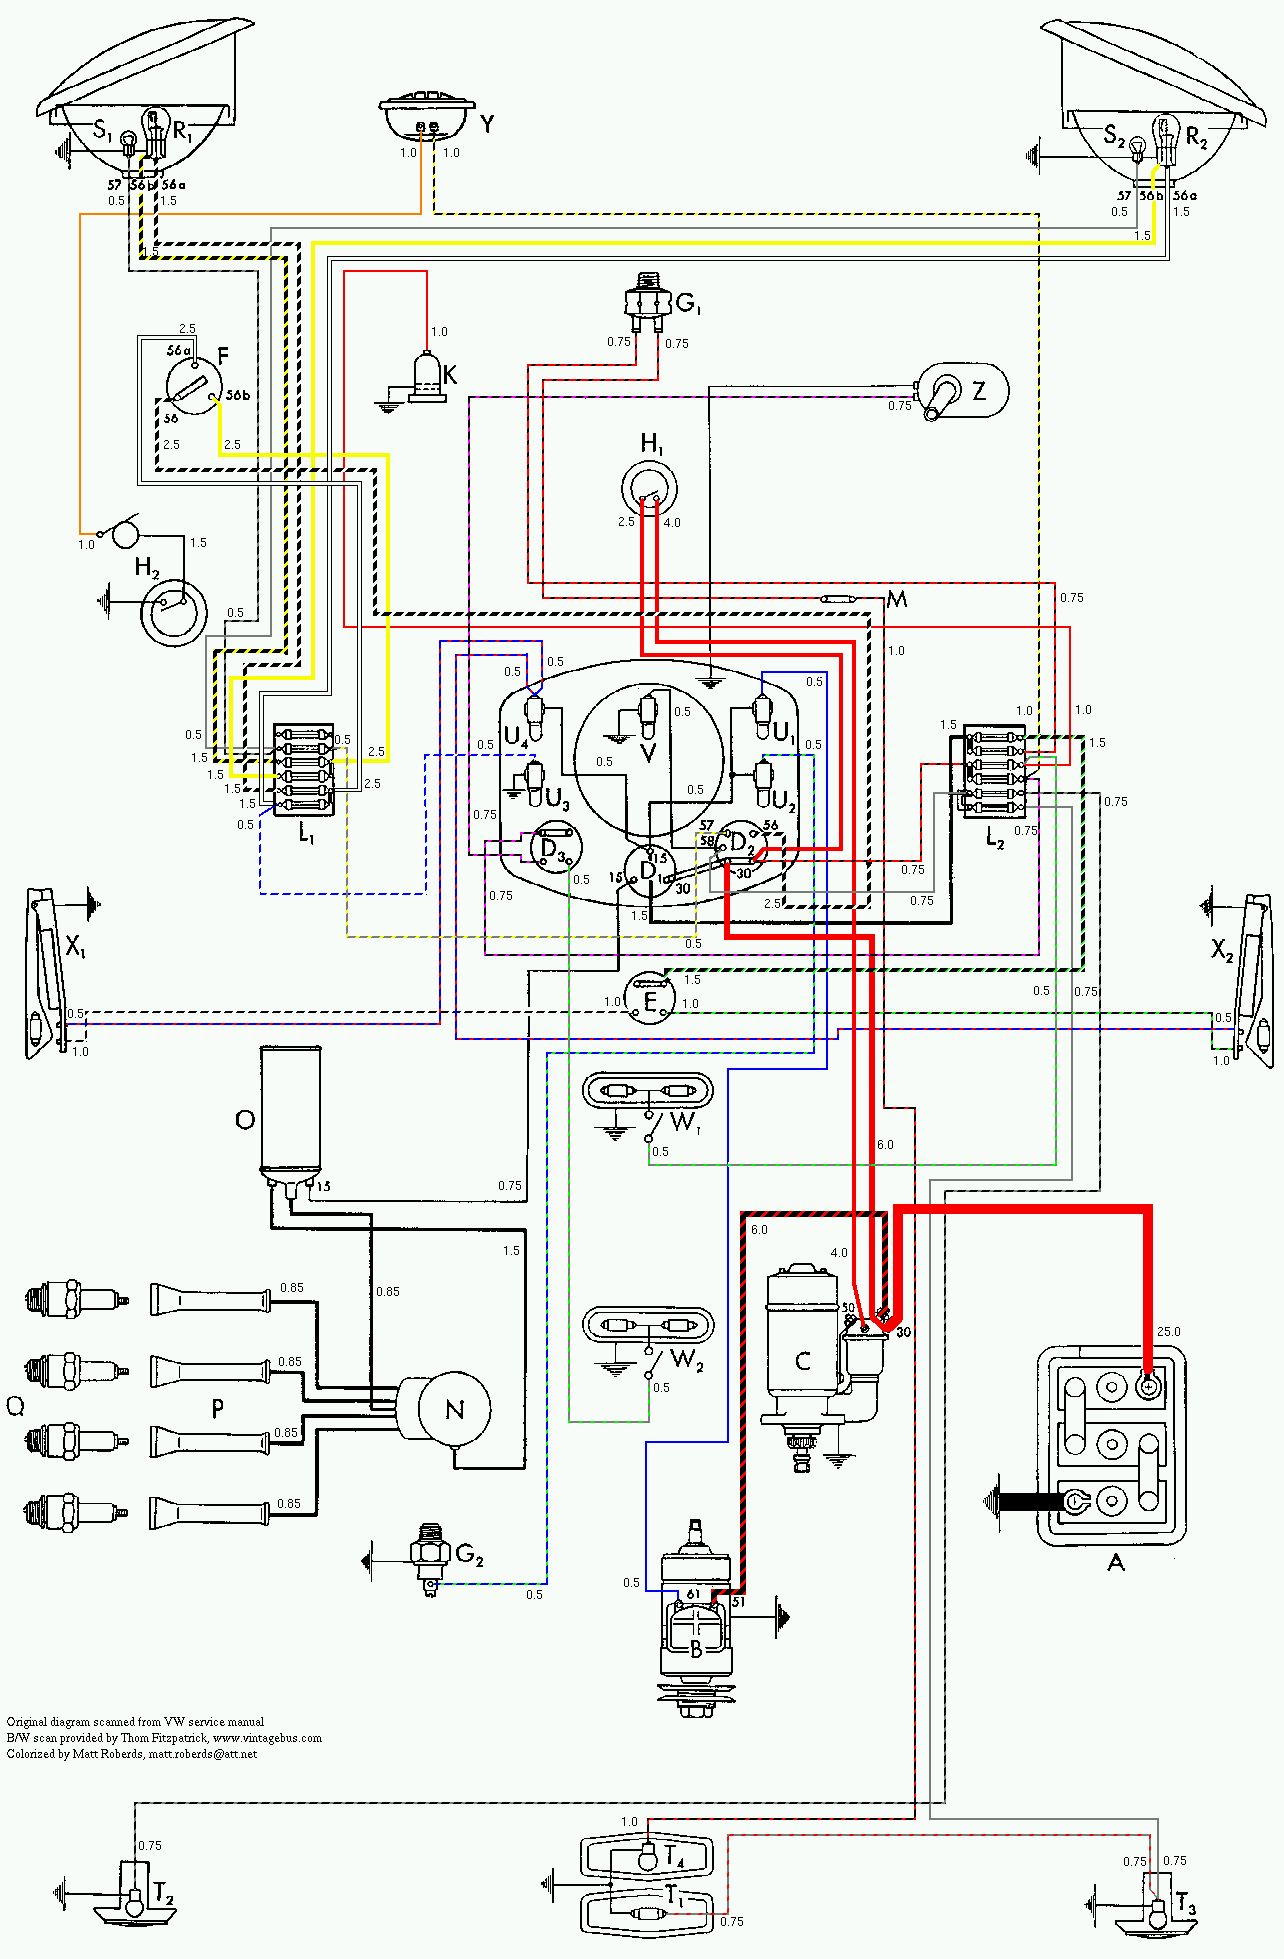 wiring diagram for 1995 ford f 150 pick up truck